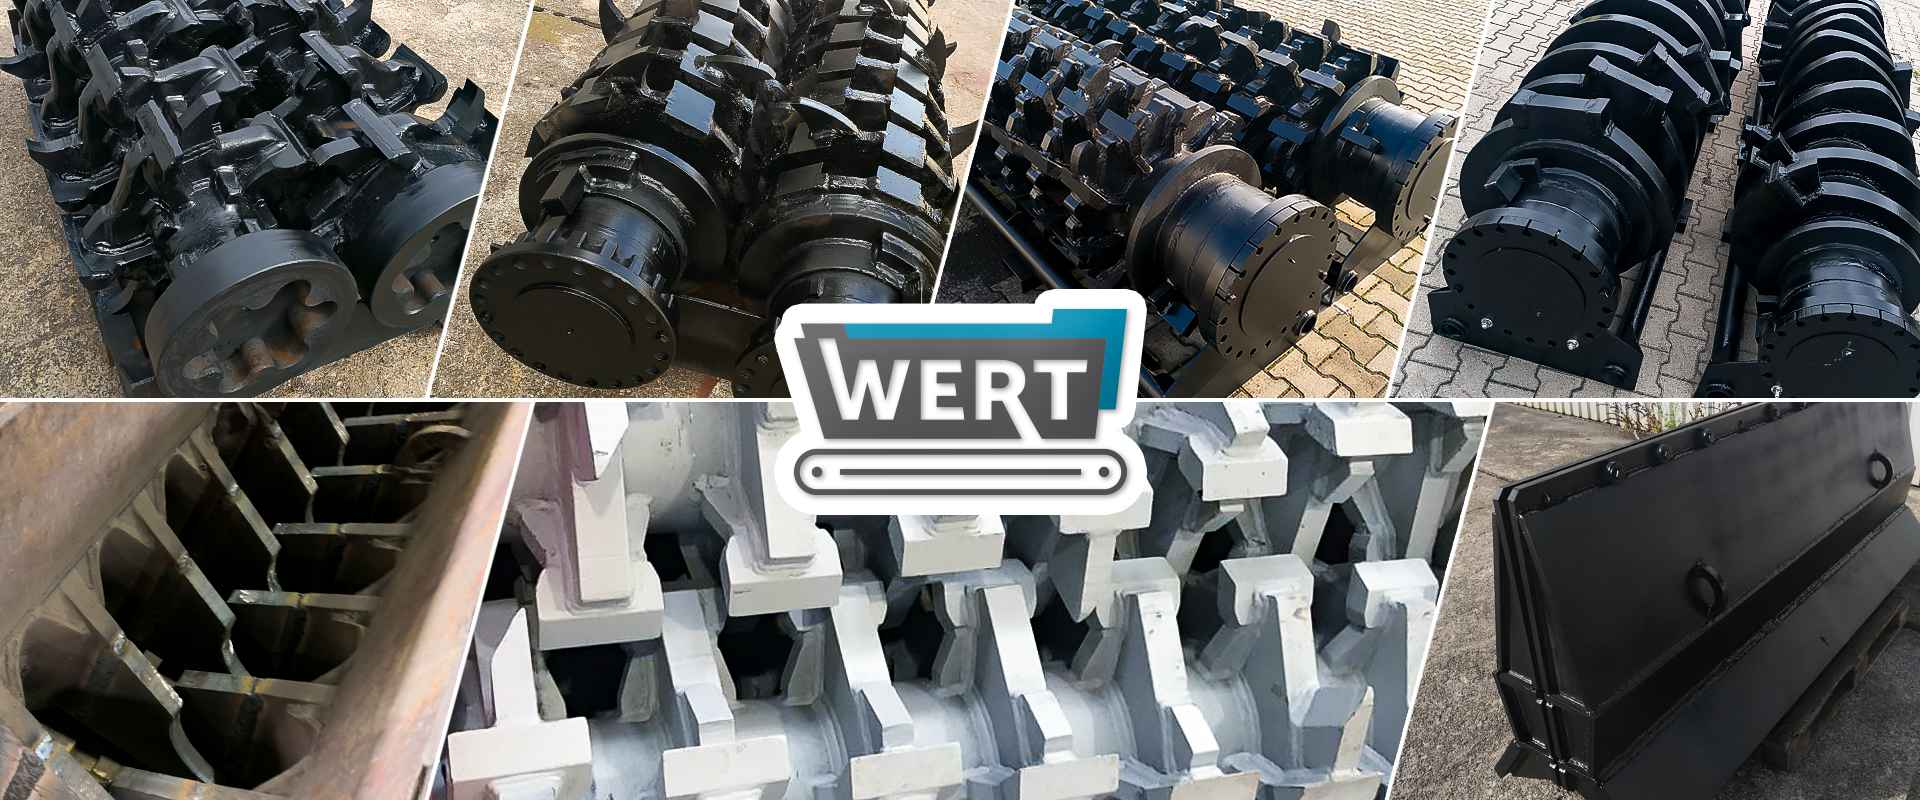 Welcome to WERT GbR